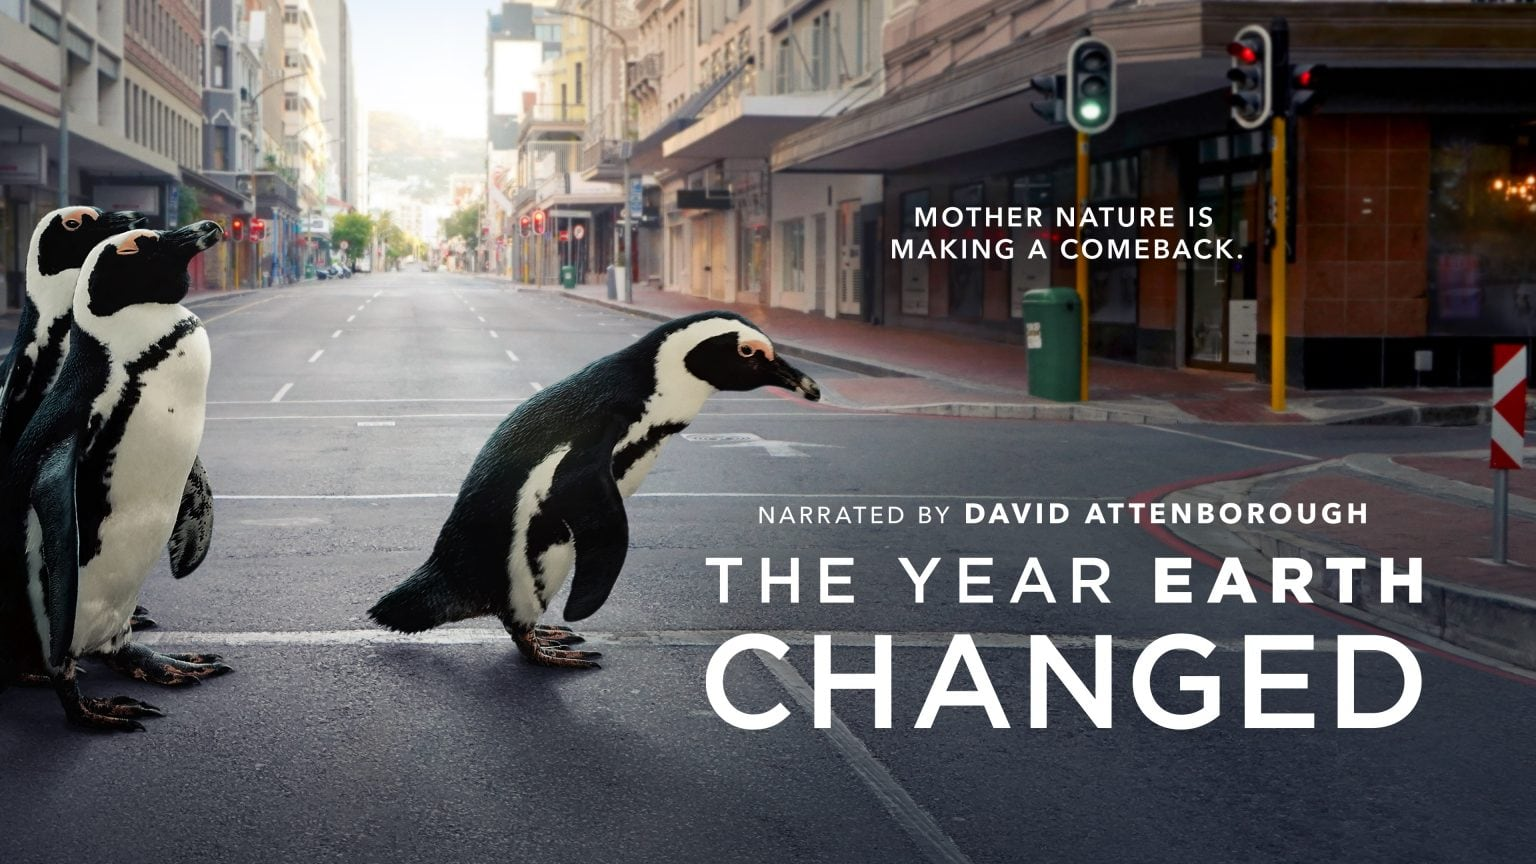 Penguins too fill us in on The Year Earth Changed